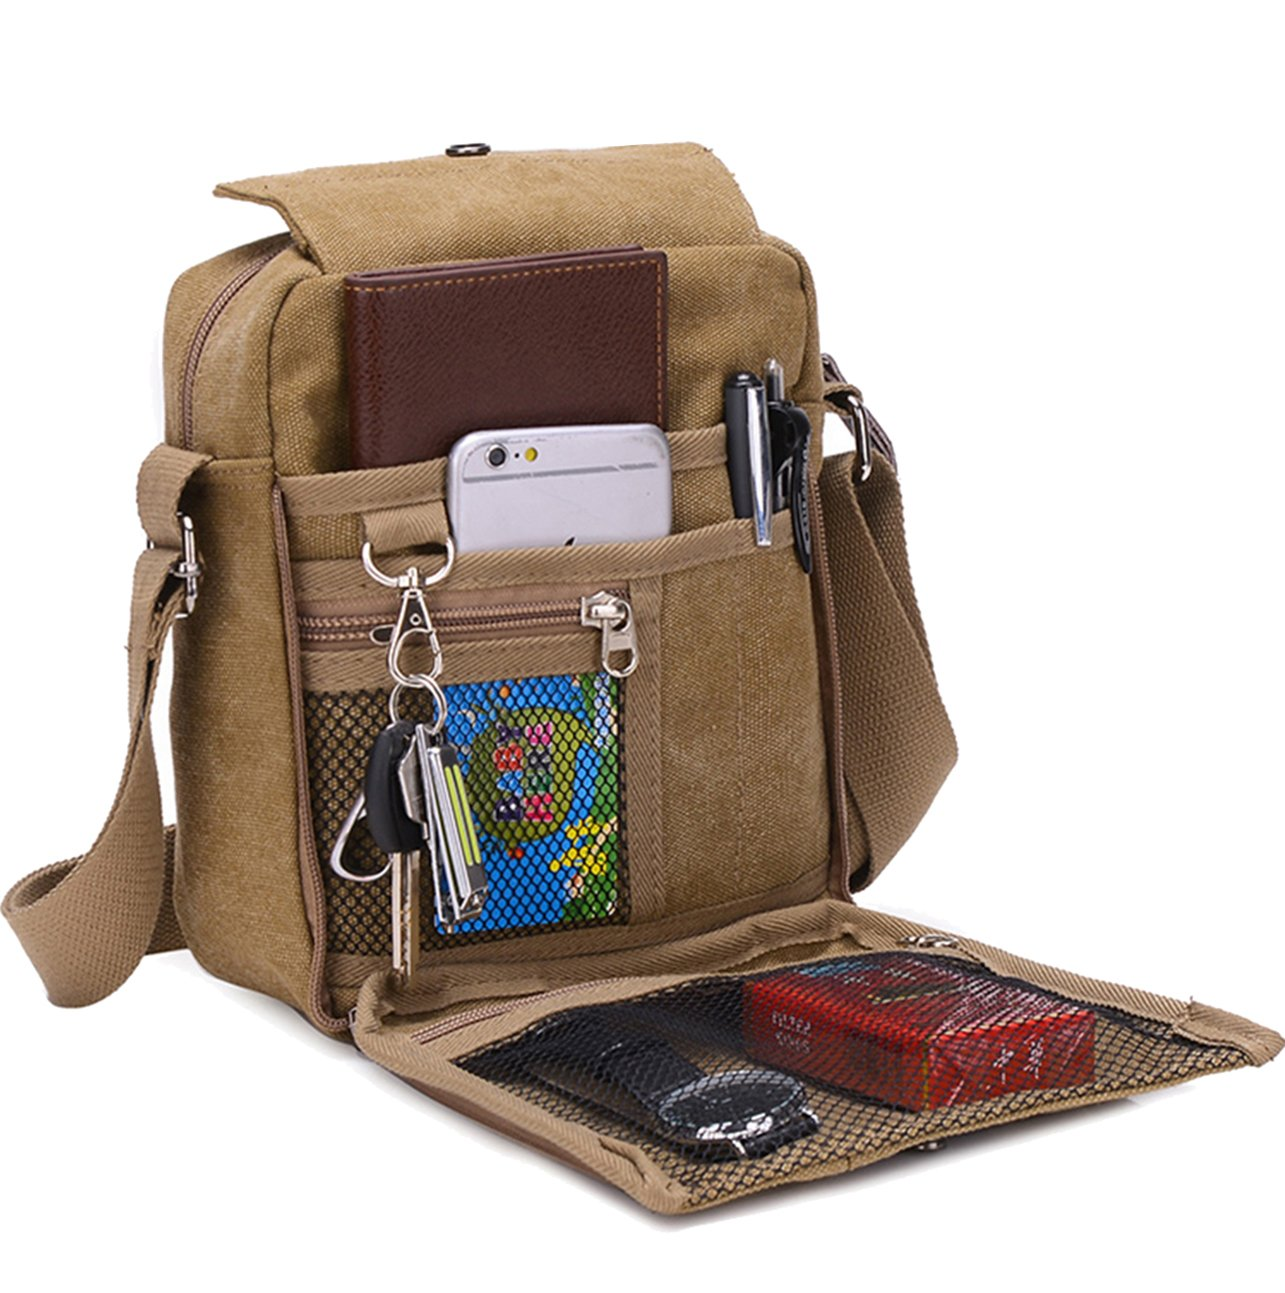 Supa Moden Man Bag Shoulder Bag Canvas Messenger Bag Retro Crossbody Bag